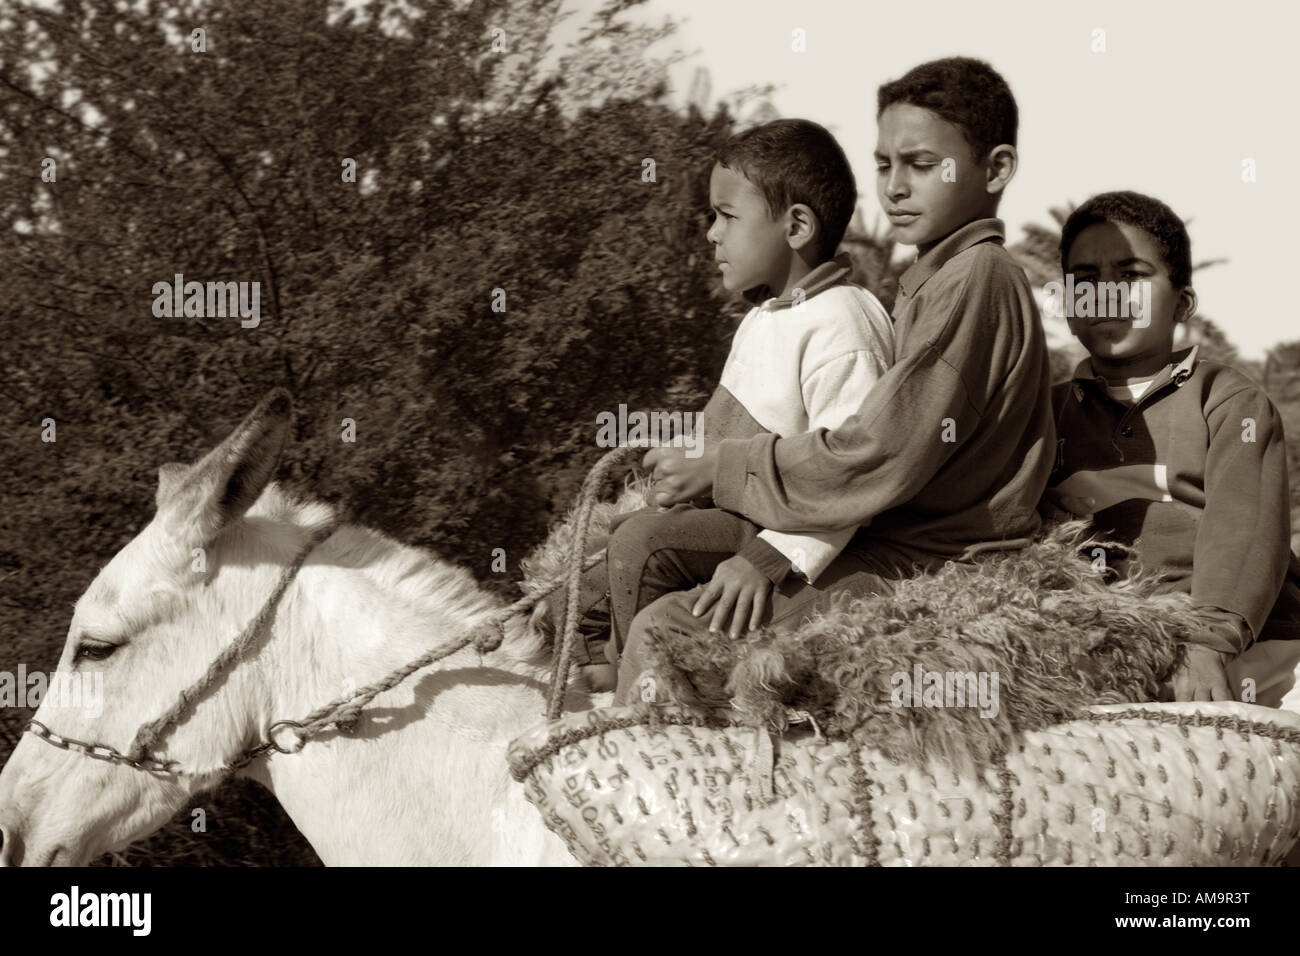 Three boys riding on donkey with supplies in baskets, Middle Egypt Africa Stock Photo